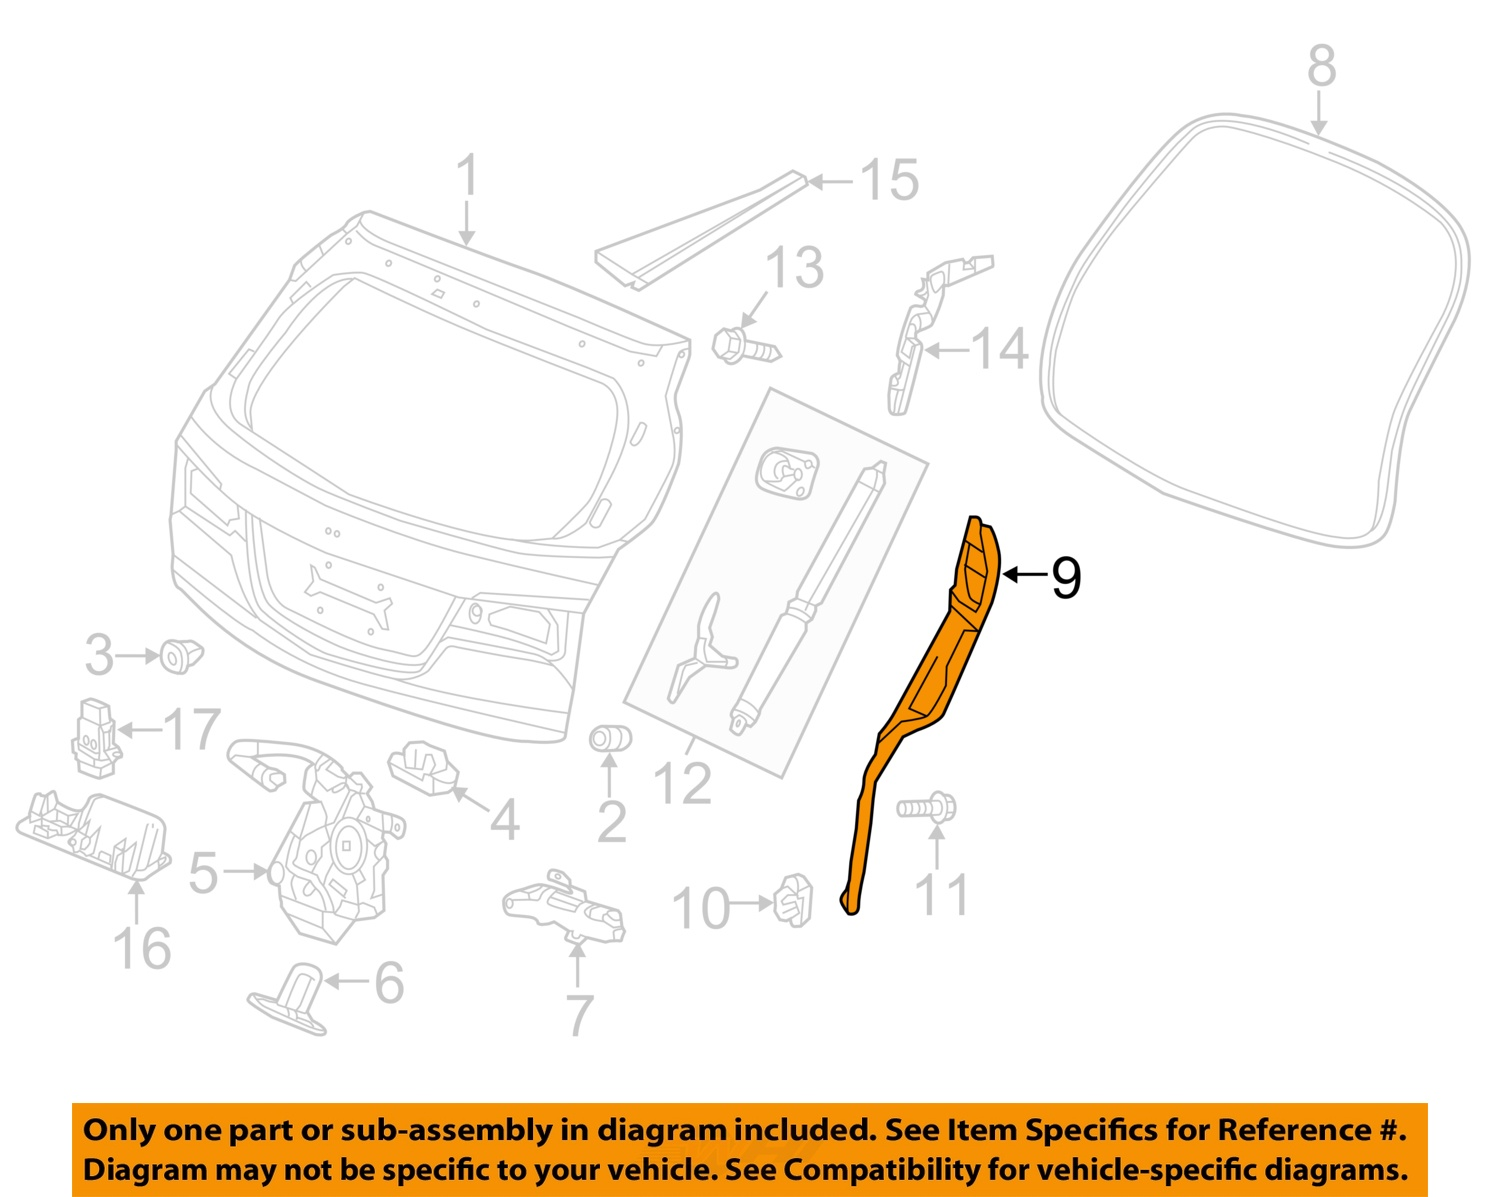 2007 Acura Mdx Fuse Locations Smart Wiring Diagrams The Brake Lightsfuse Boxdiagramunder Question 2004 Diagram Of Bank 2 Sensor On 05 2002